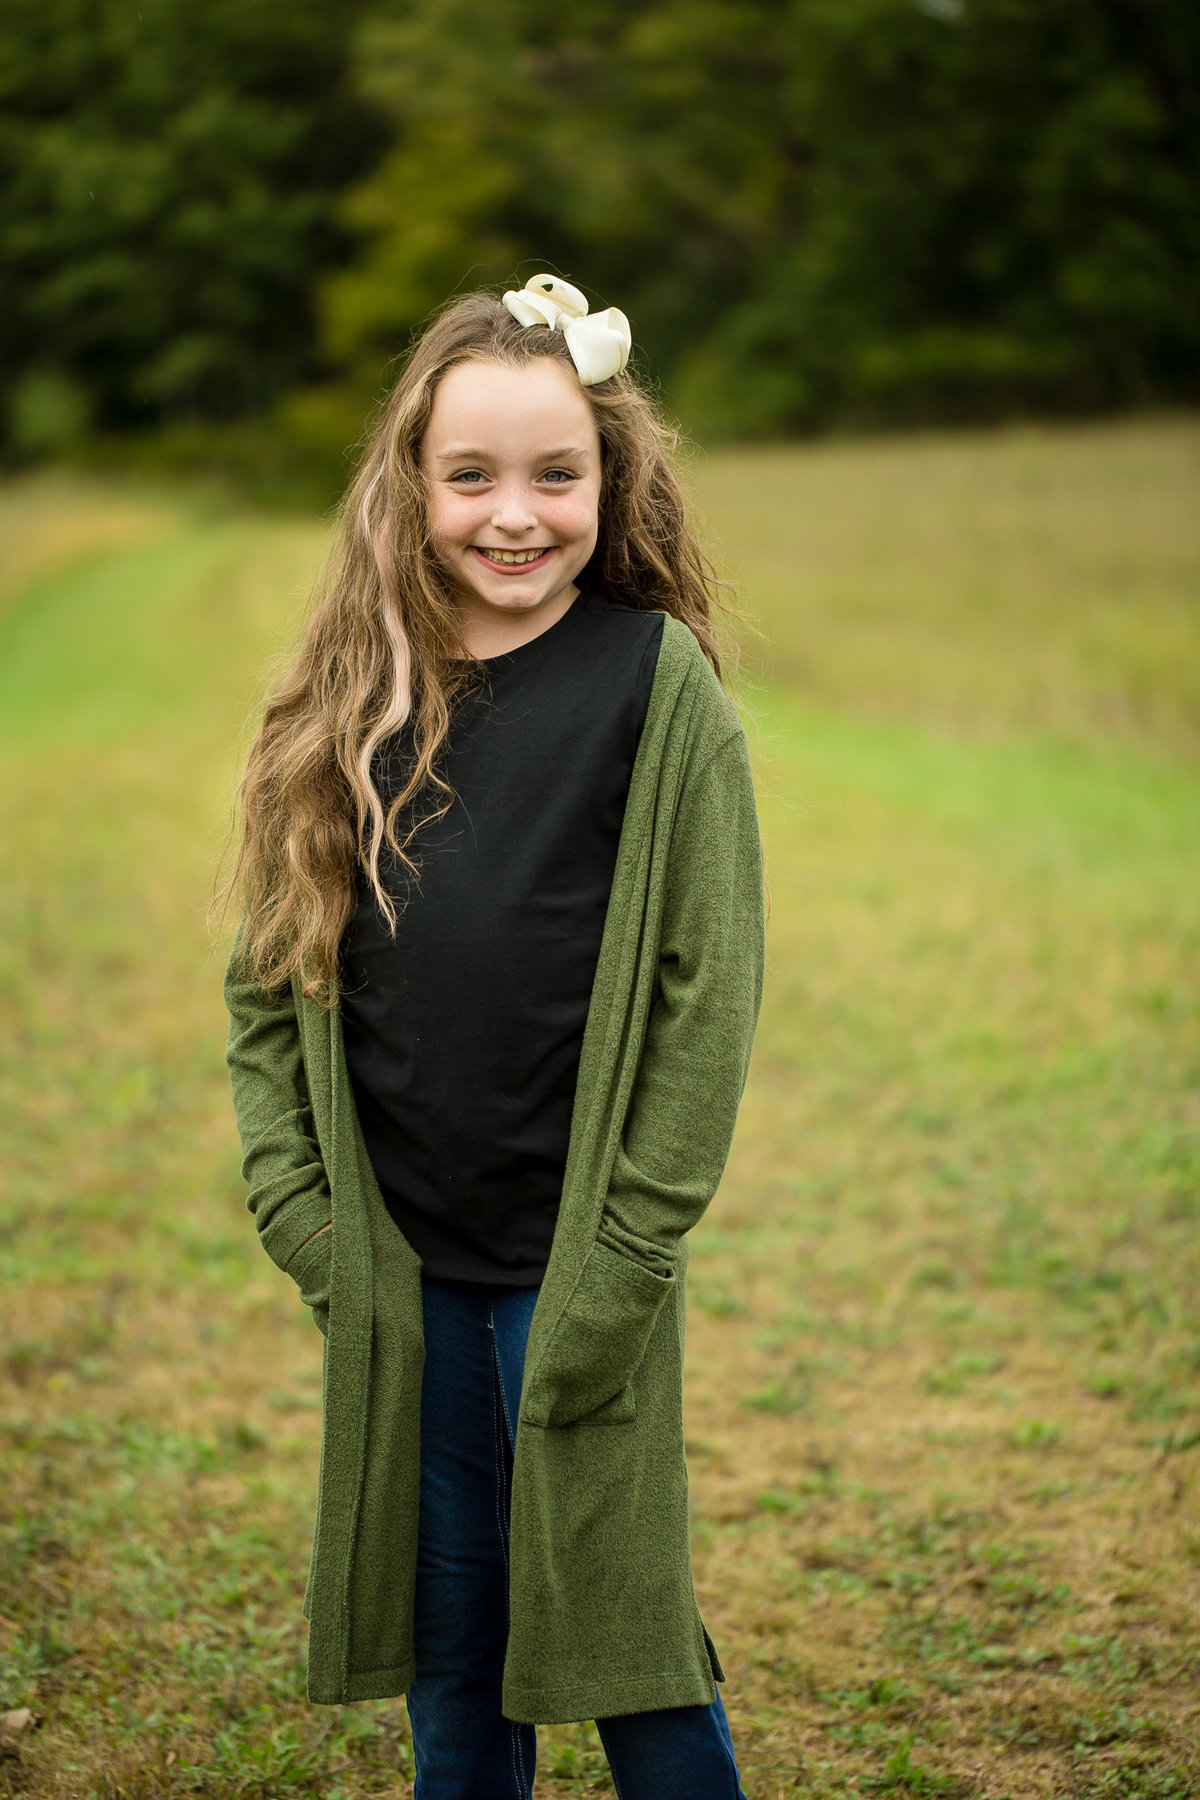 Brynn-Wheatley-Photography-2019-Palmer-Mini-Session-IN-19